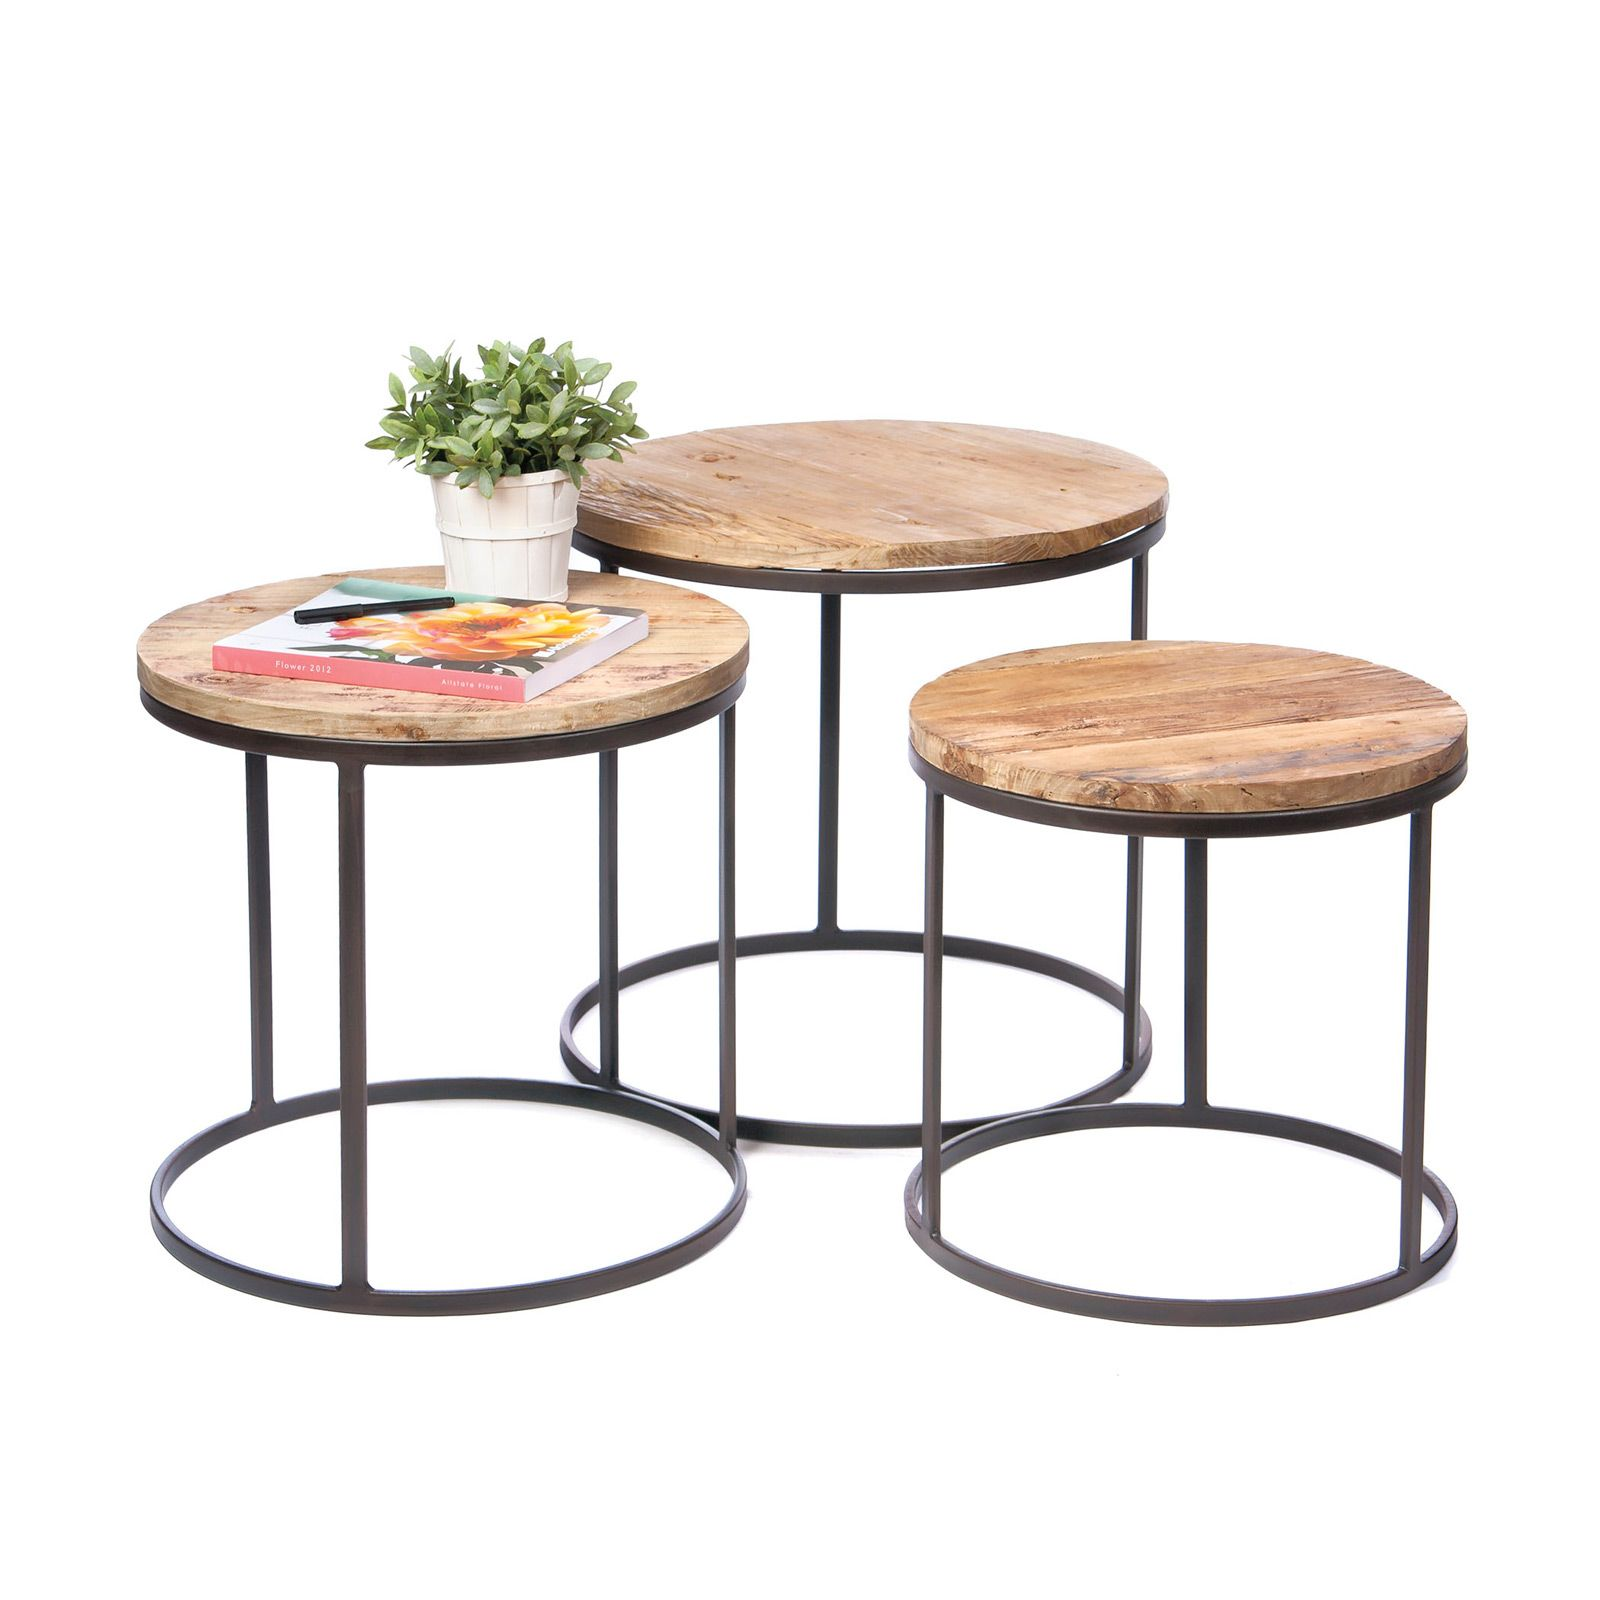 Dot Bo Furniture And Decor For The Modern Lifestyle Nesting Tables Nesting Tables Living Room Metal Table [ 1600 x 1600 Pixel ]